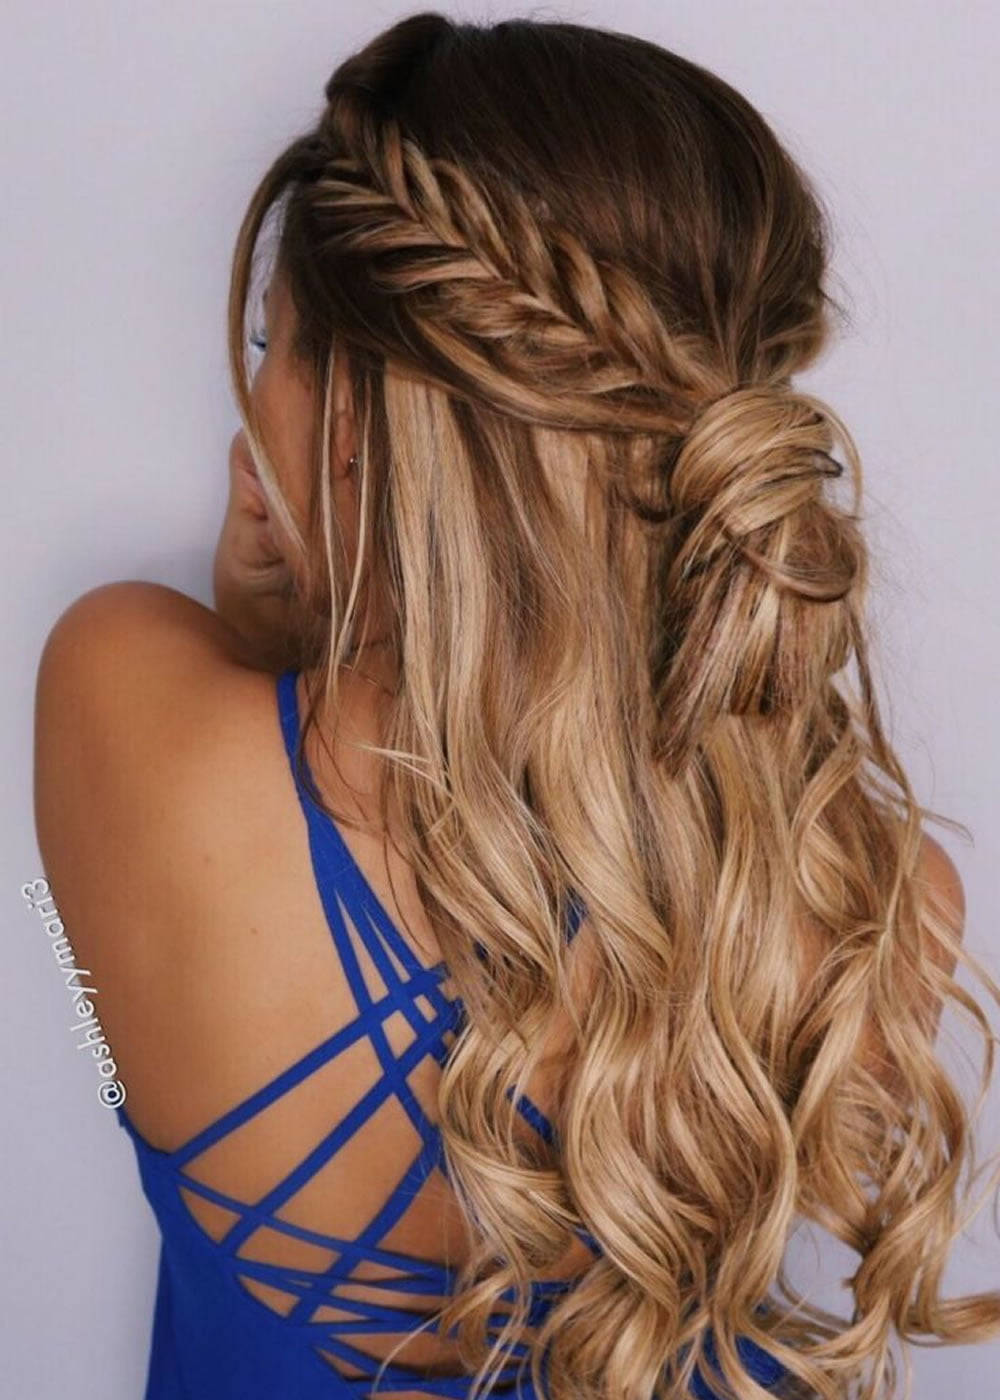 25 very stylish soft braided hairstyles ideas 20182019